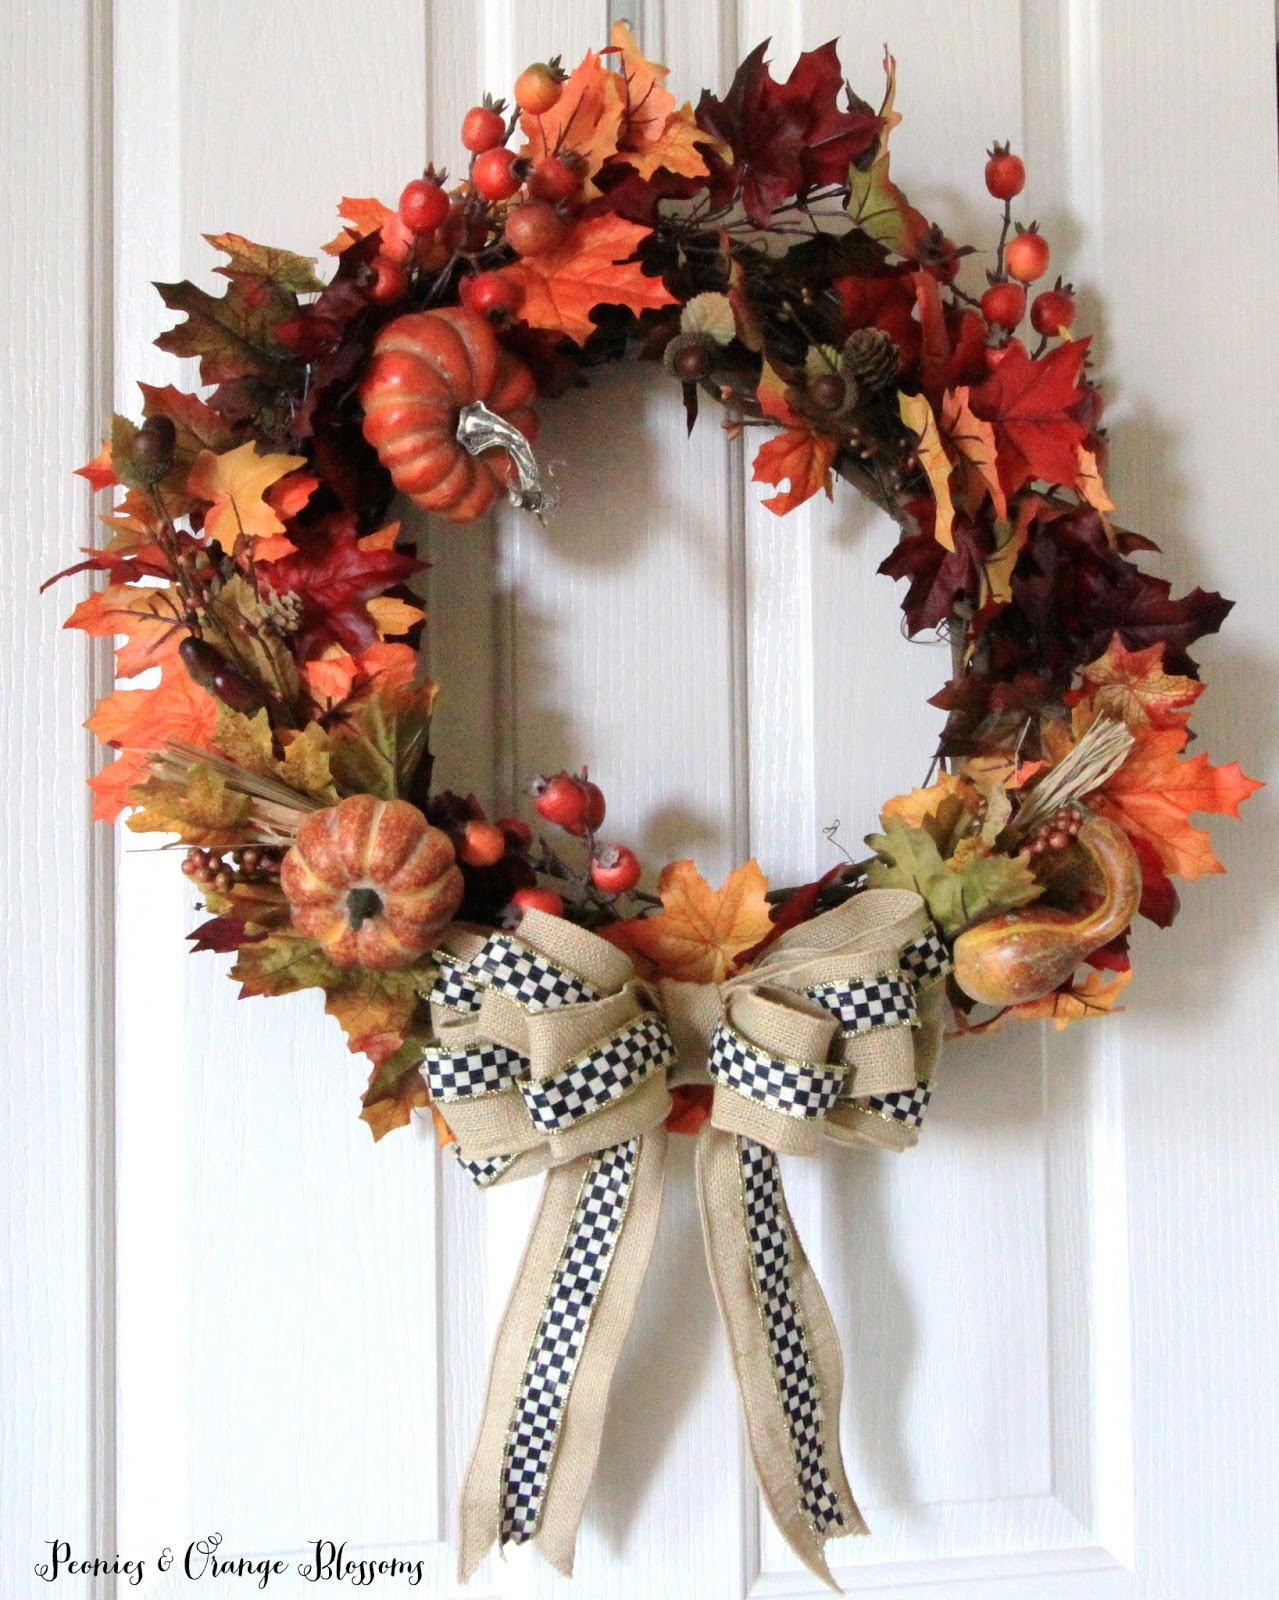 Peonies And Orange Blossoms Diy Fall Wreath Tutorial